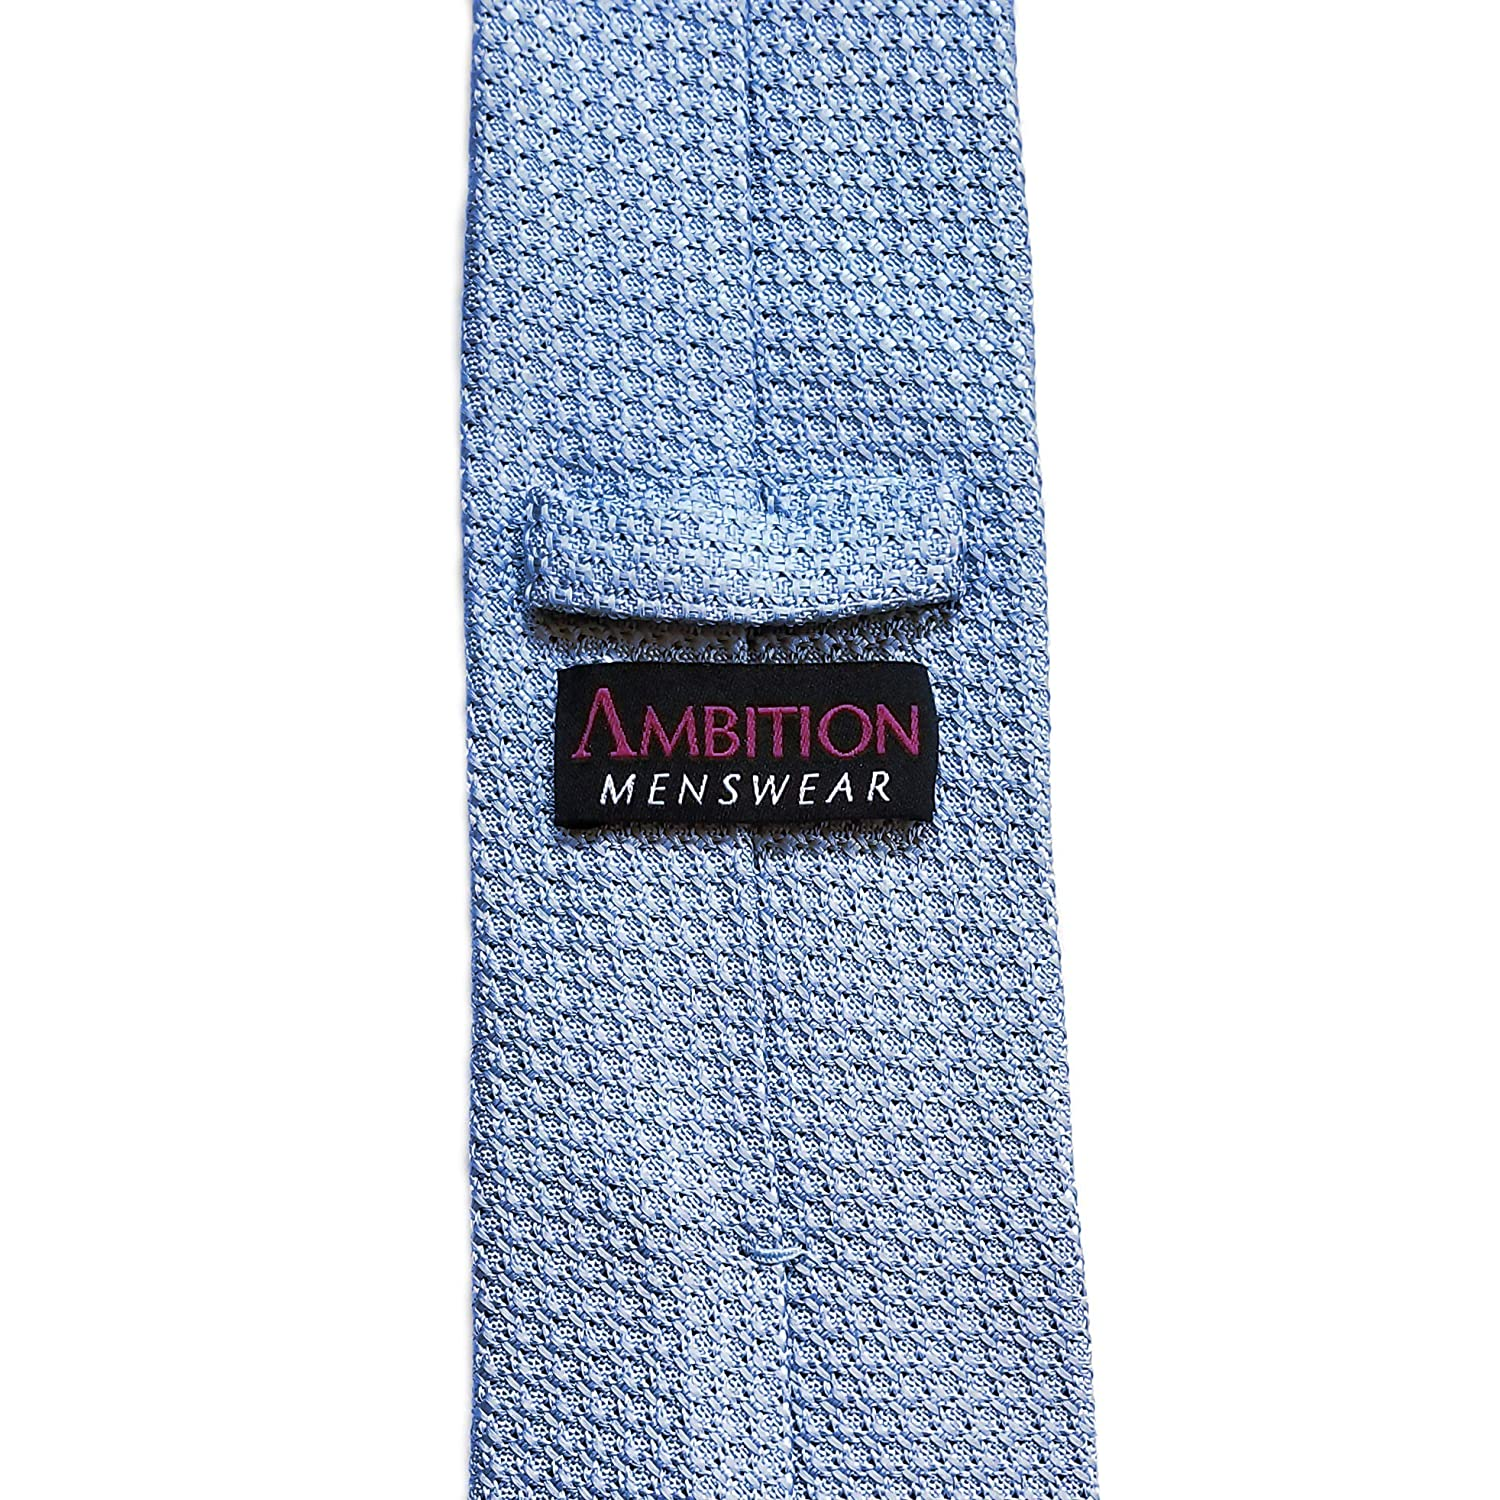 Amazon.com: ITALIANO Grenadine Seda Corbata Por Ambition ...